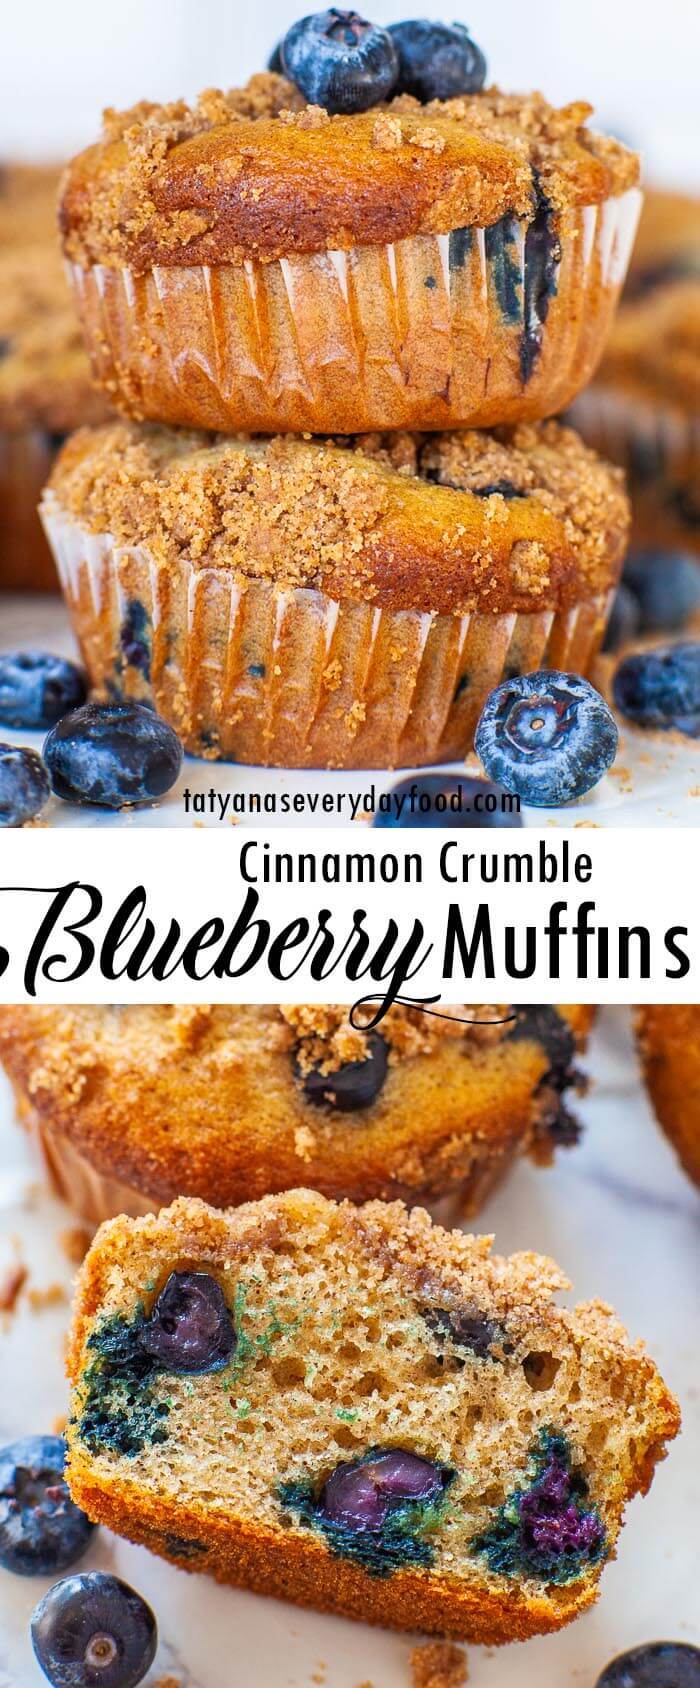 Cinnamon Crumble Blueberry Muffins video recipe